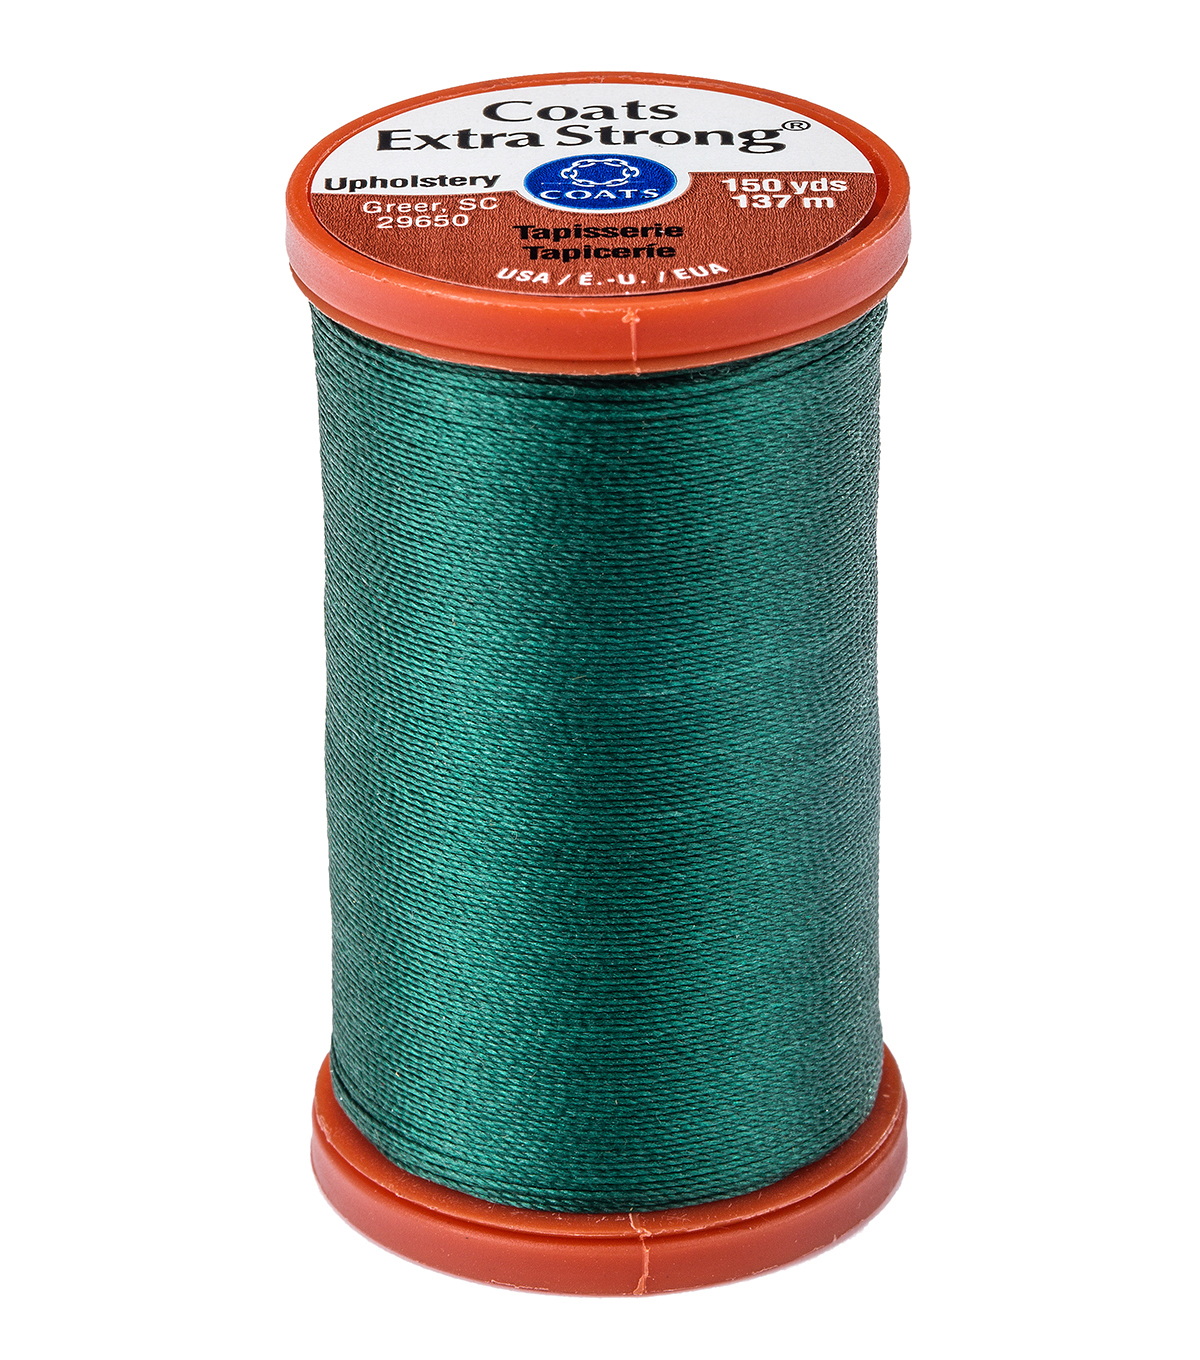 Coats & Clark Extra Strong & Upholstery Thread 150 yd , Hunter Green